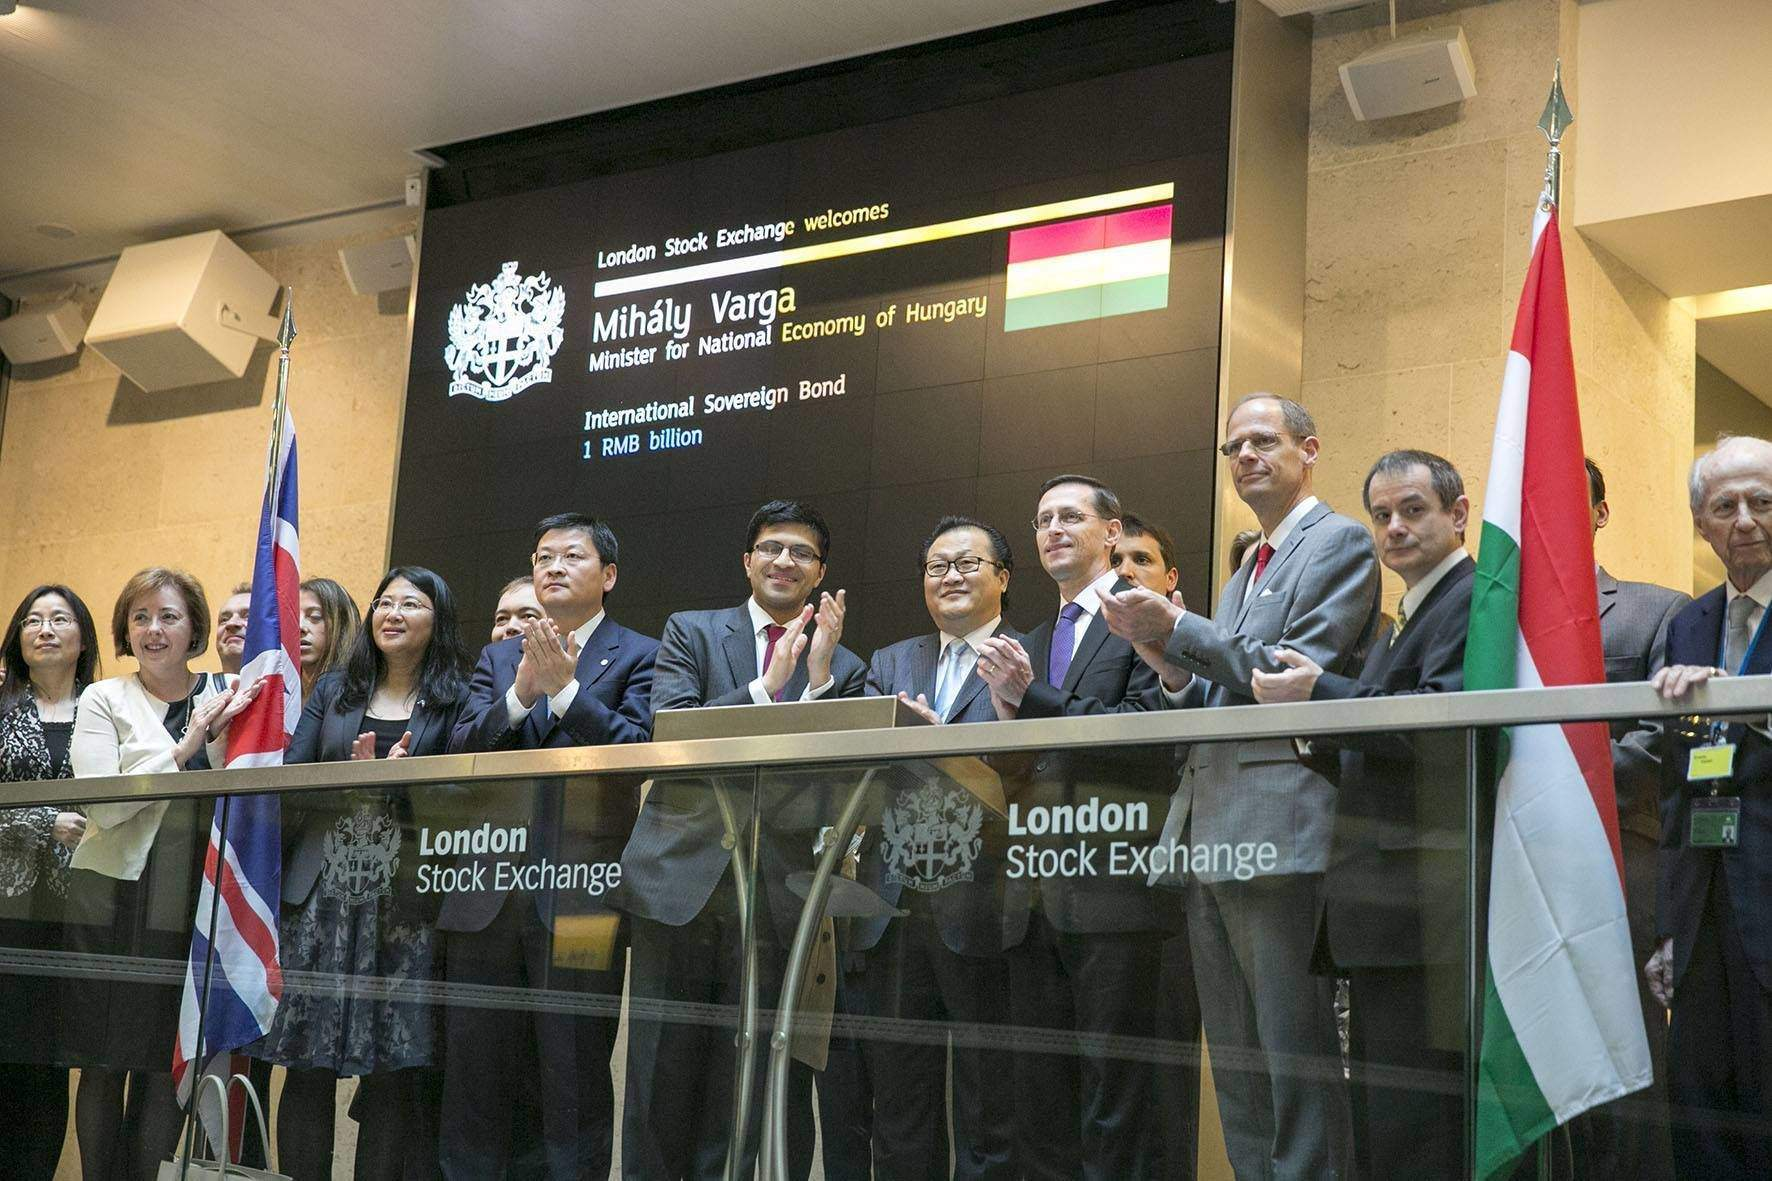 Hungarian economy minister opens London Stock Exchange to mark listing of yuan bond